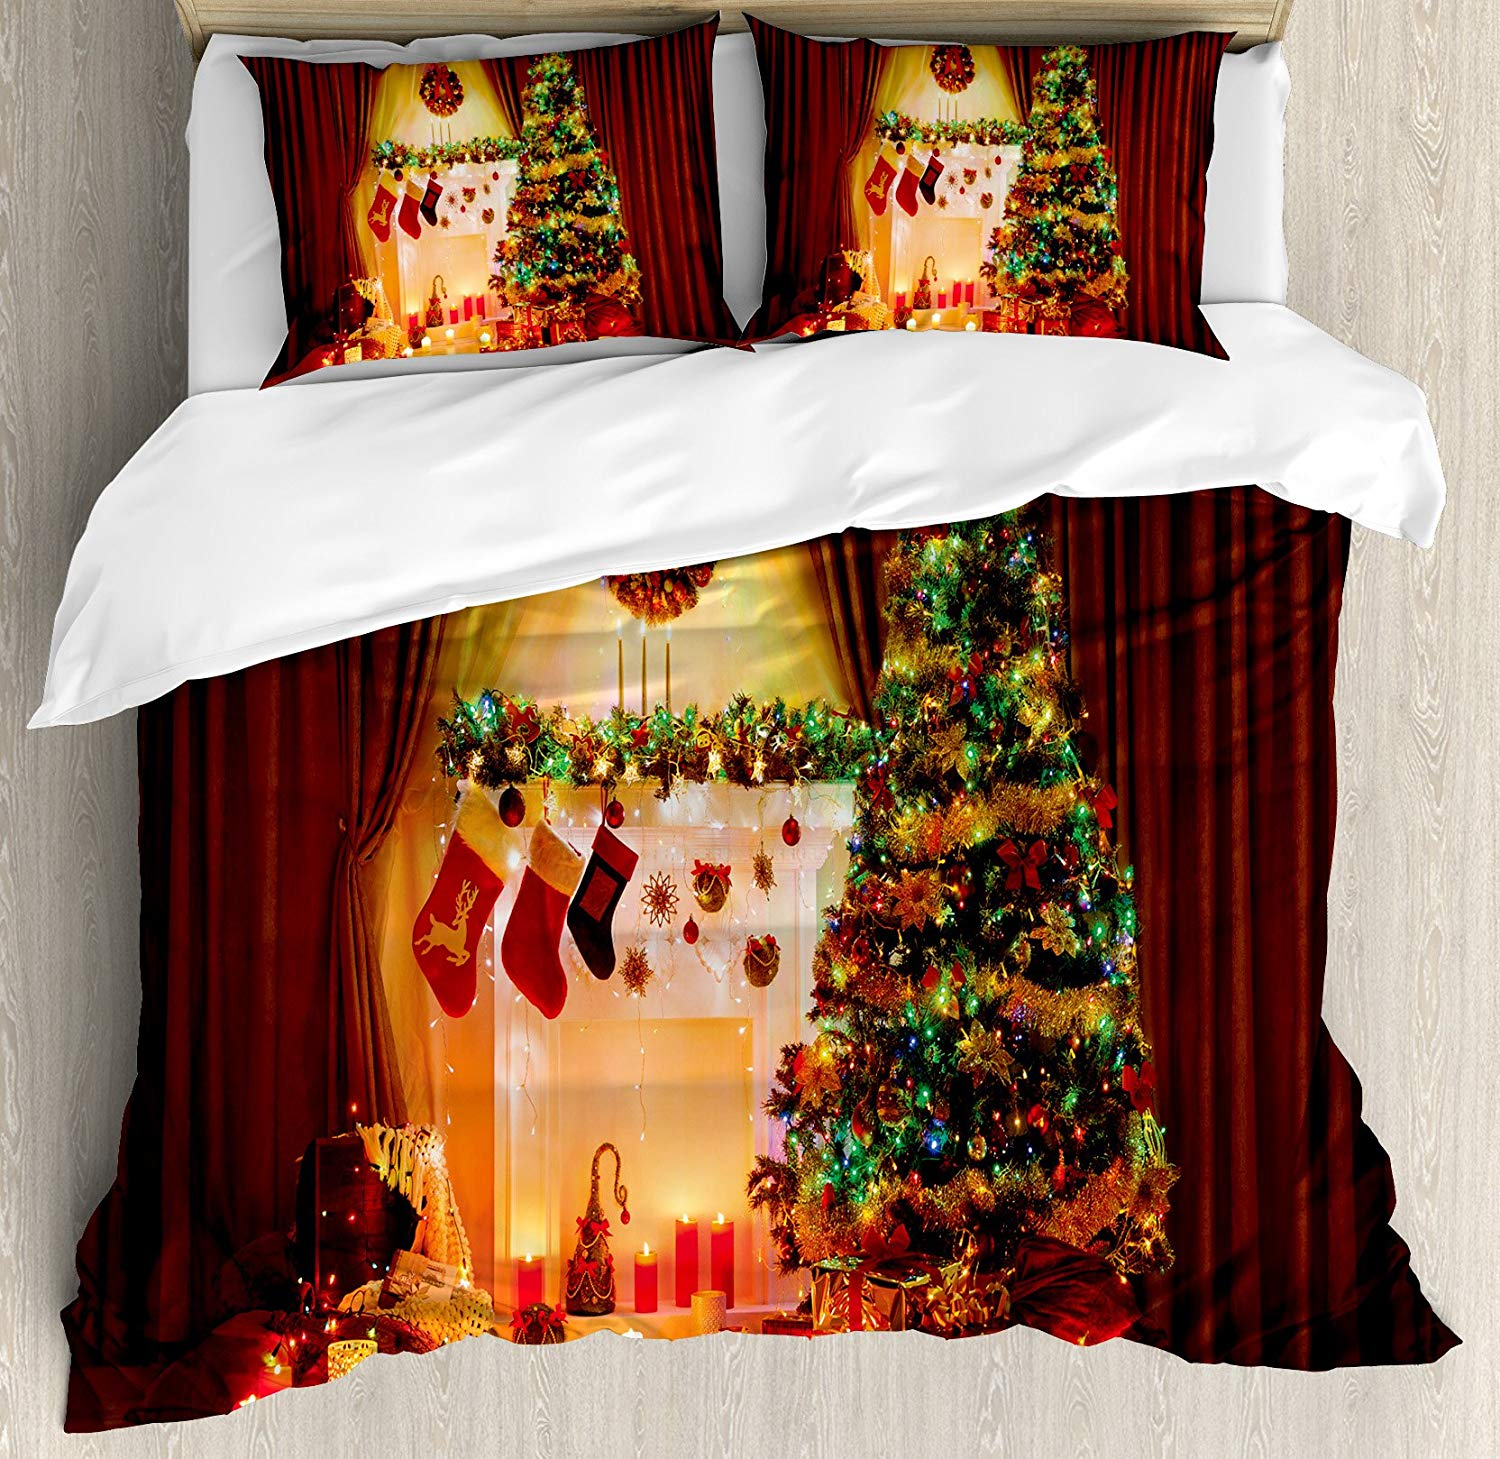 Ambesonne Peaceful Christmas Duvet Cover Set - Buy Christmas Duvet Covers